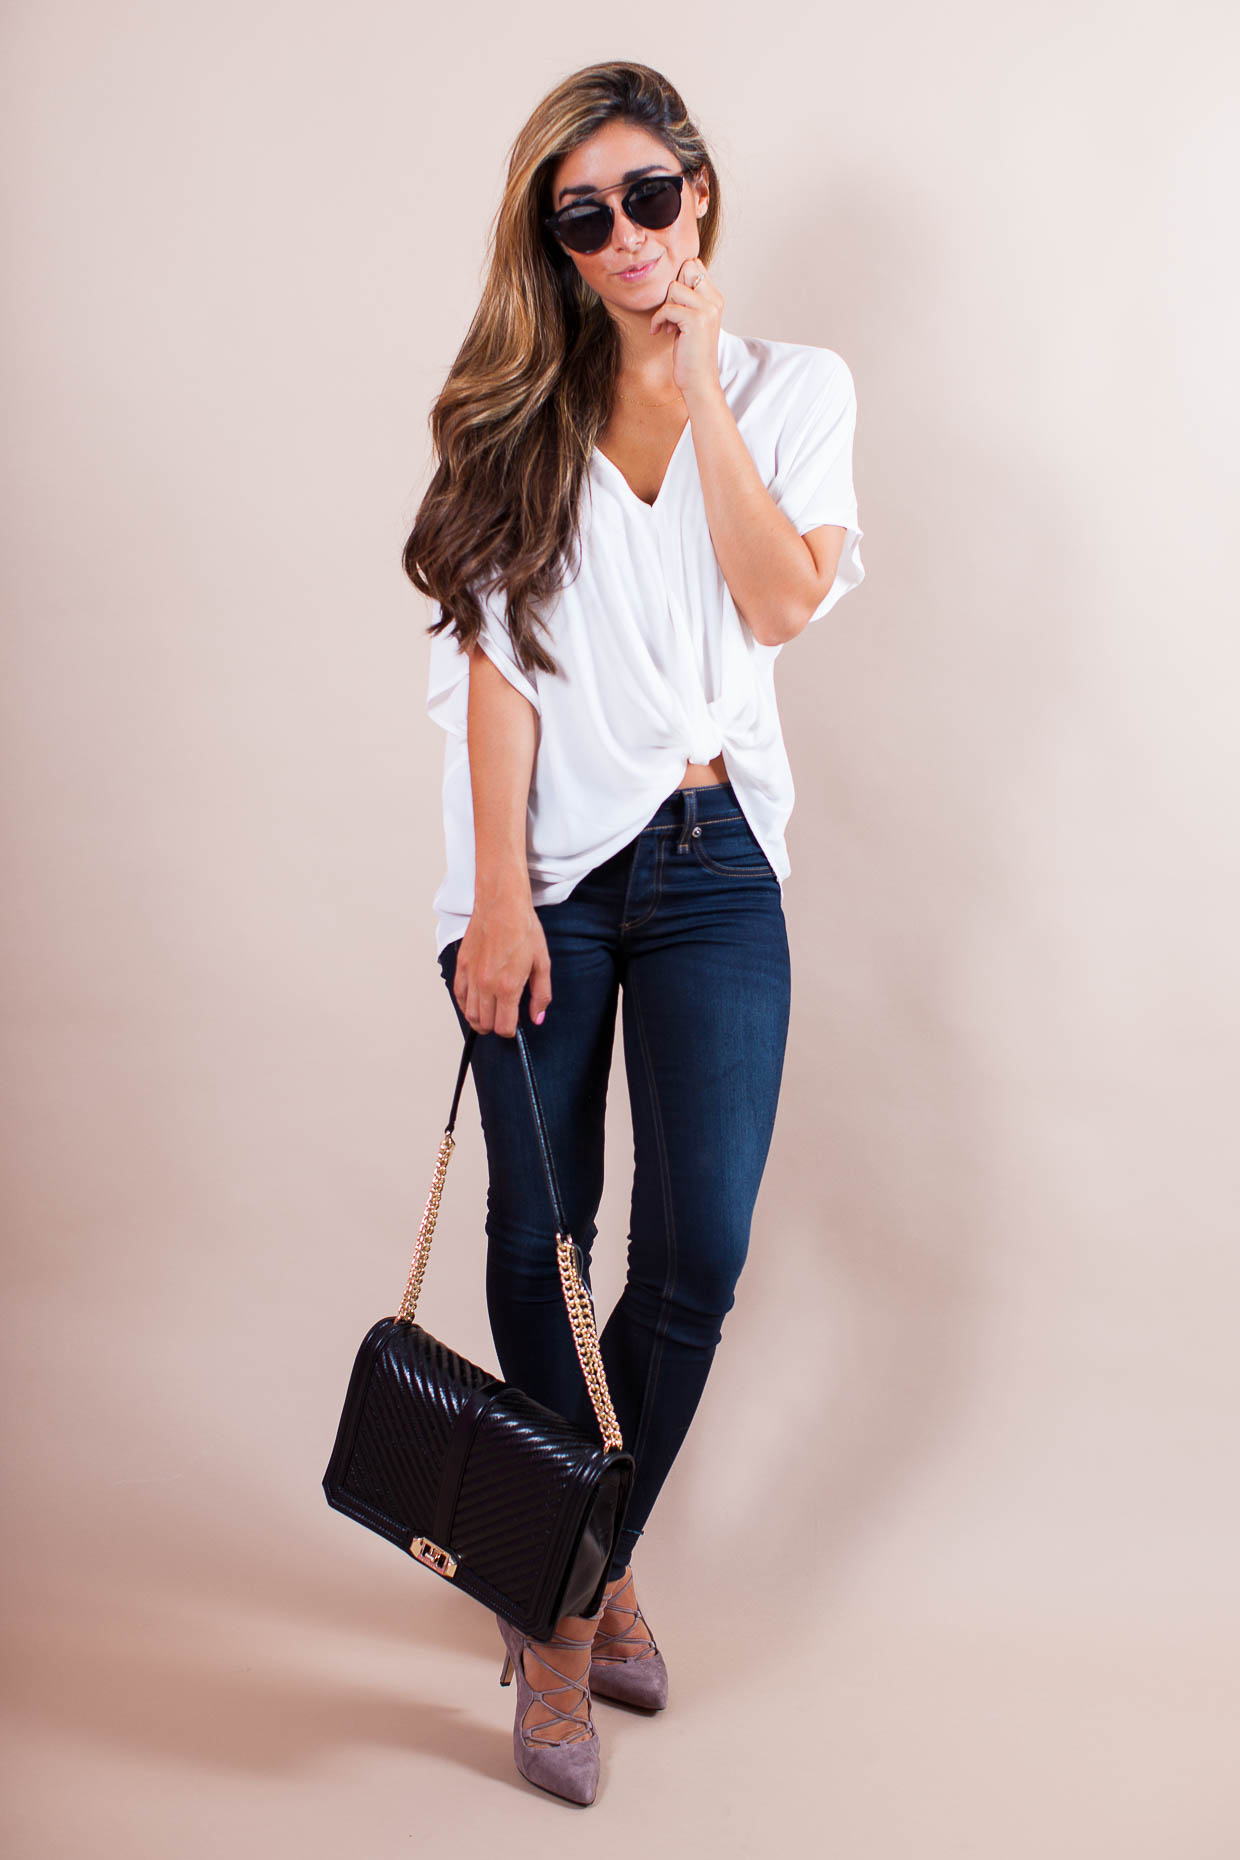 Fashion Blogger The Darling Detail is wearing a Lush Twist Front Woven Top with Rag & Bone Skinny Jeans, Vince Camuto 'Barsha' Lace-up Pumps, Dior 'So Real' 48mm Sunglasses, and a Rebecca Minkoff 'Love Jumbo' Crossbody Bag.